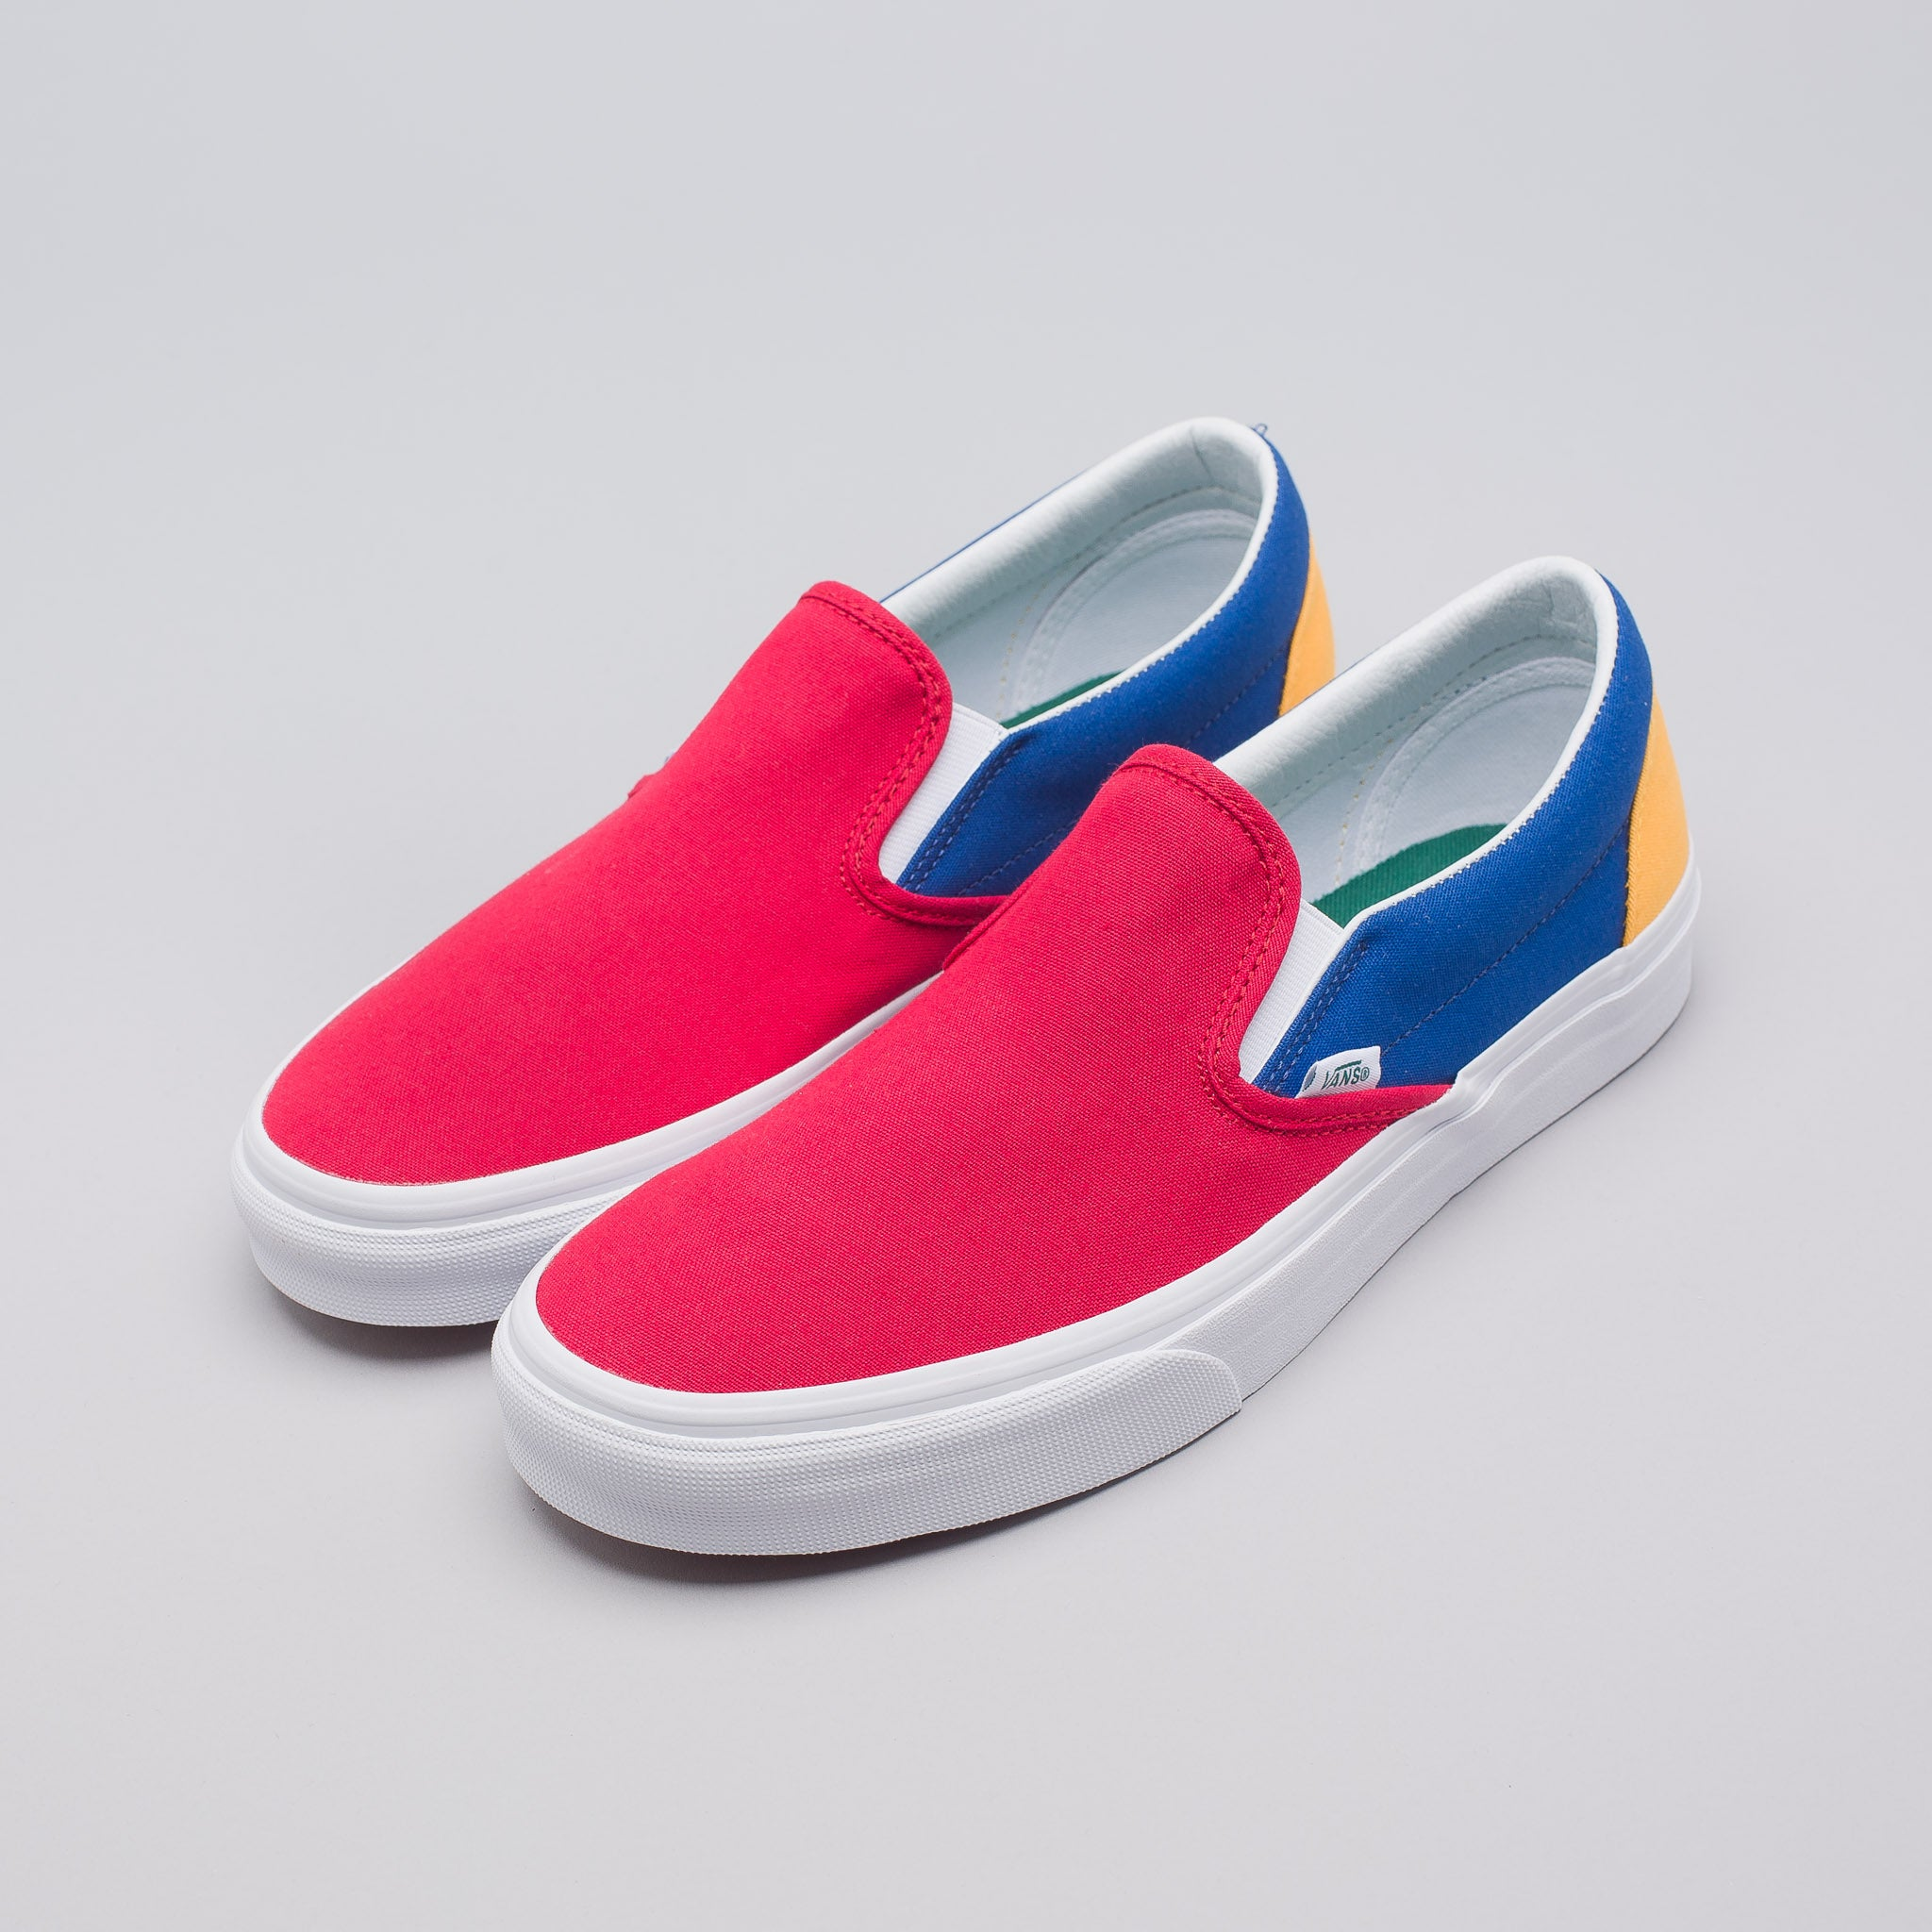 d004392fea5f Buy 2 OFF ANY vans red blue yellow CASE AND GET 70% OFF!